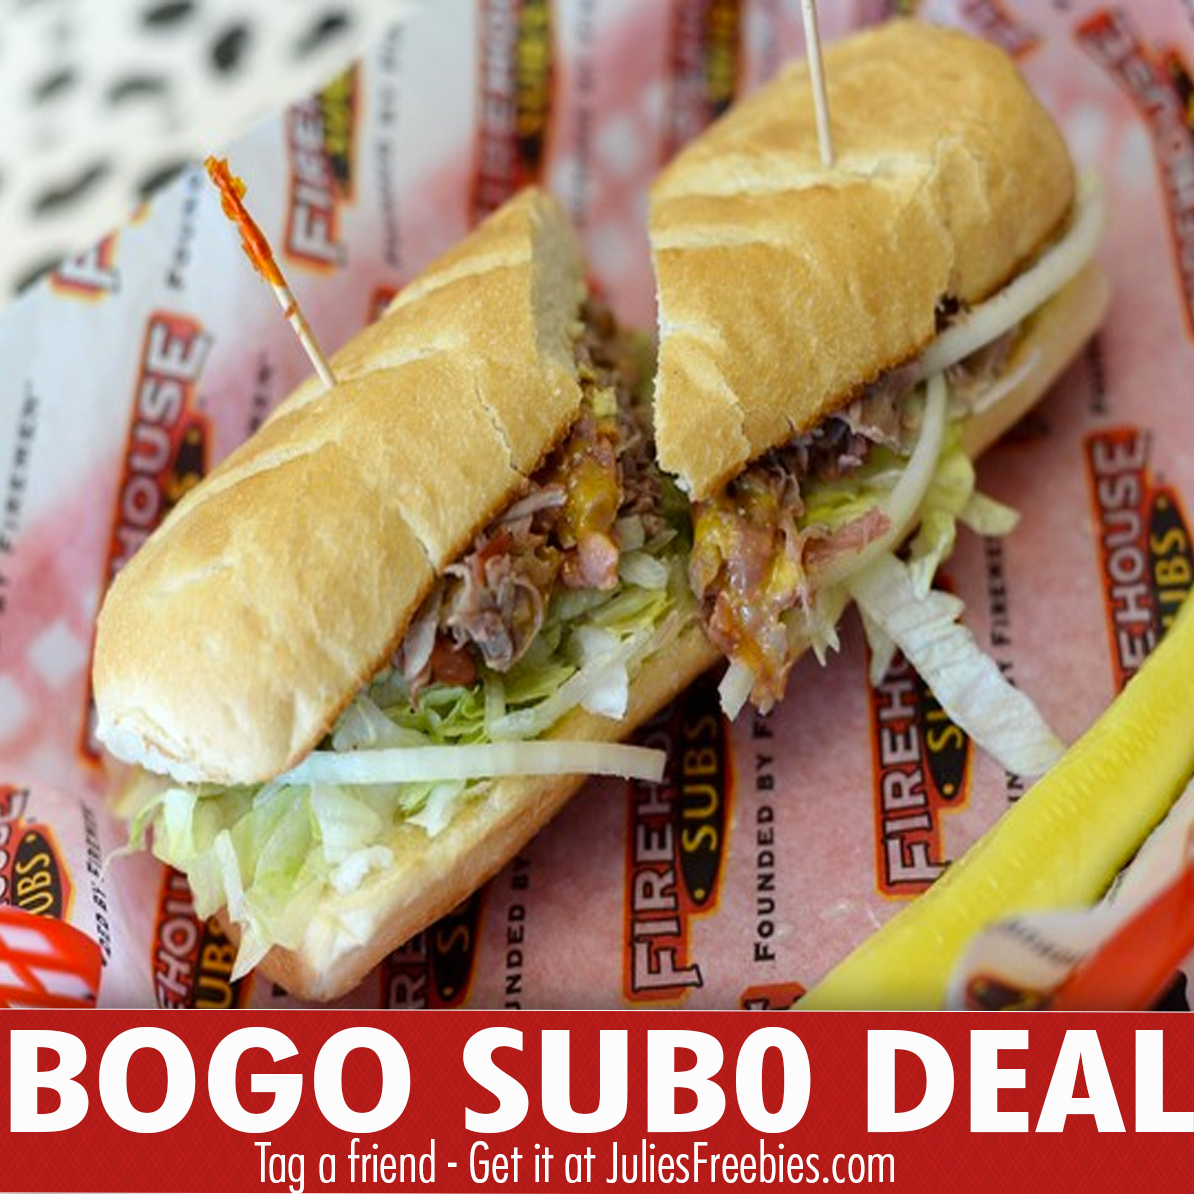 graphic about Printable Menu Firehouse Subs called 20+ Firehouse Subs Coupon 2018 Illustrations or photos and Recommendations upon Weric